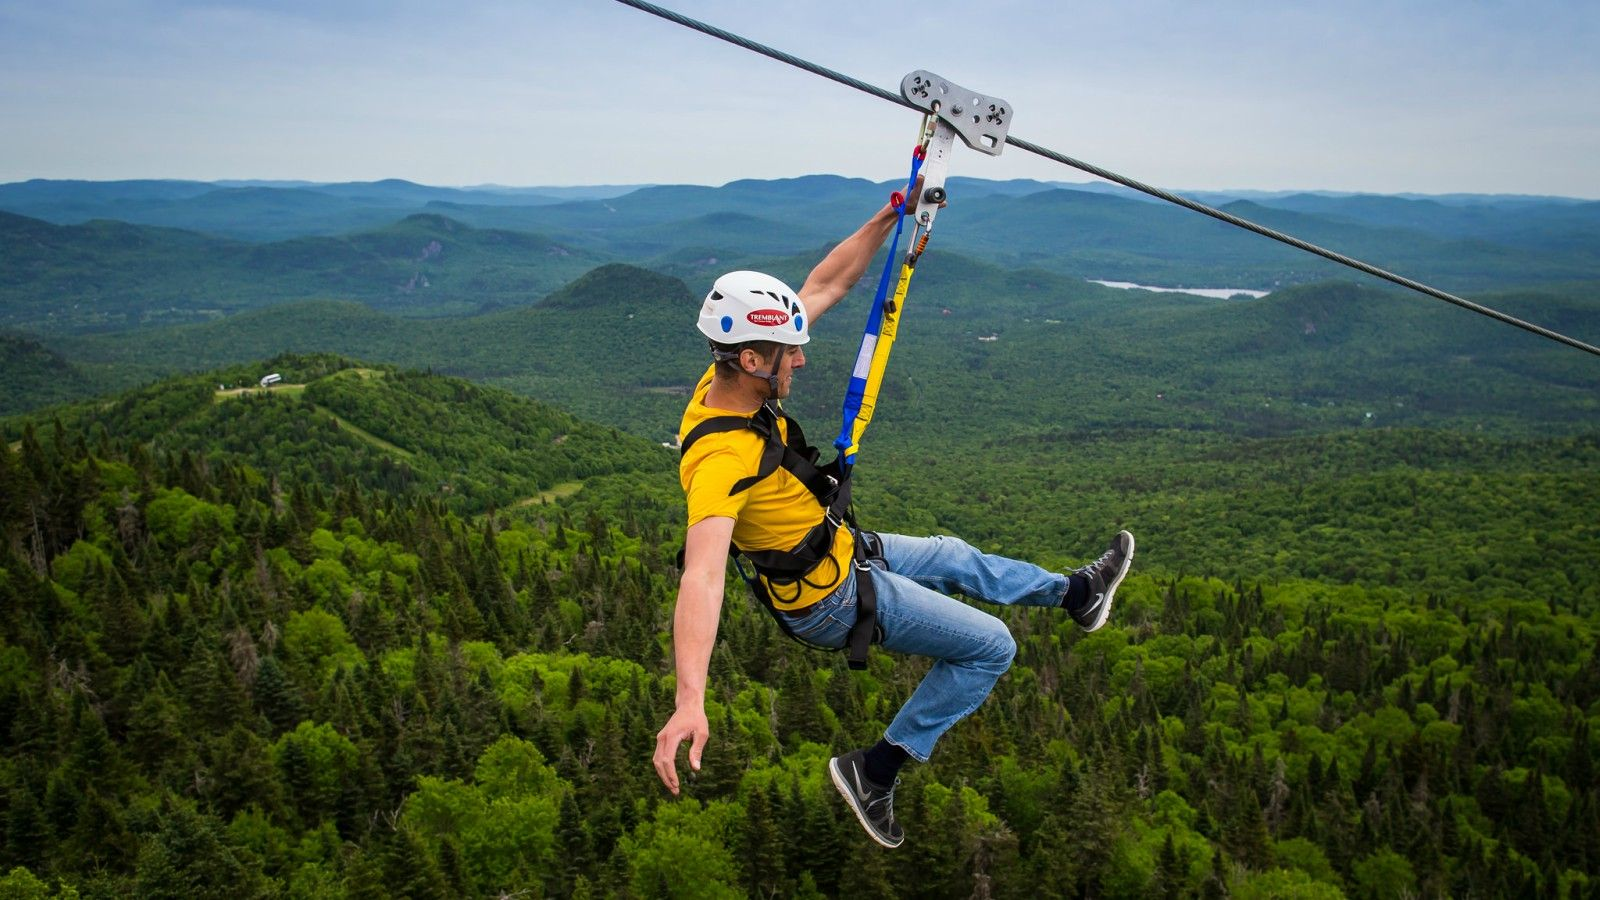 Things to do at Tremblant - Zip Line